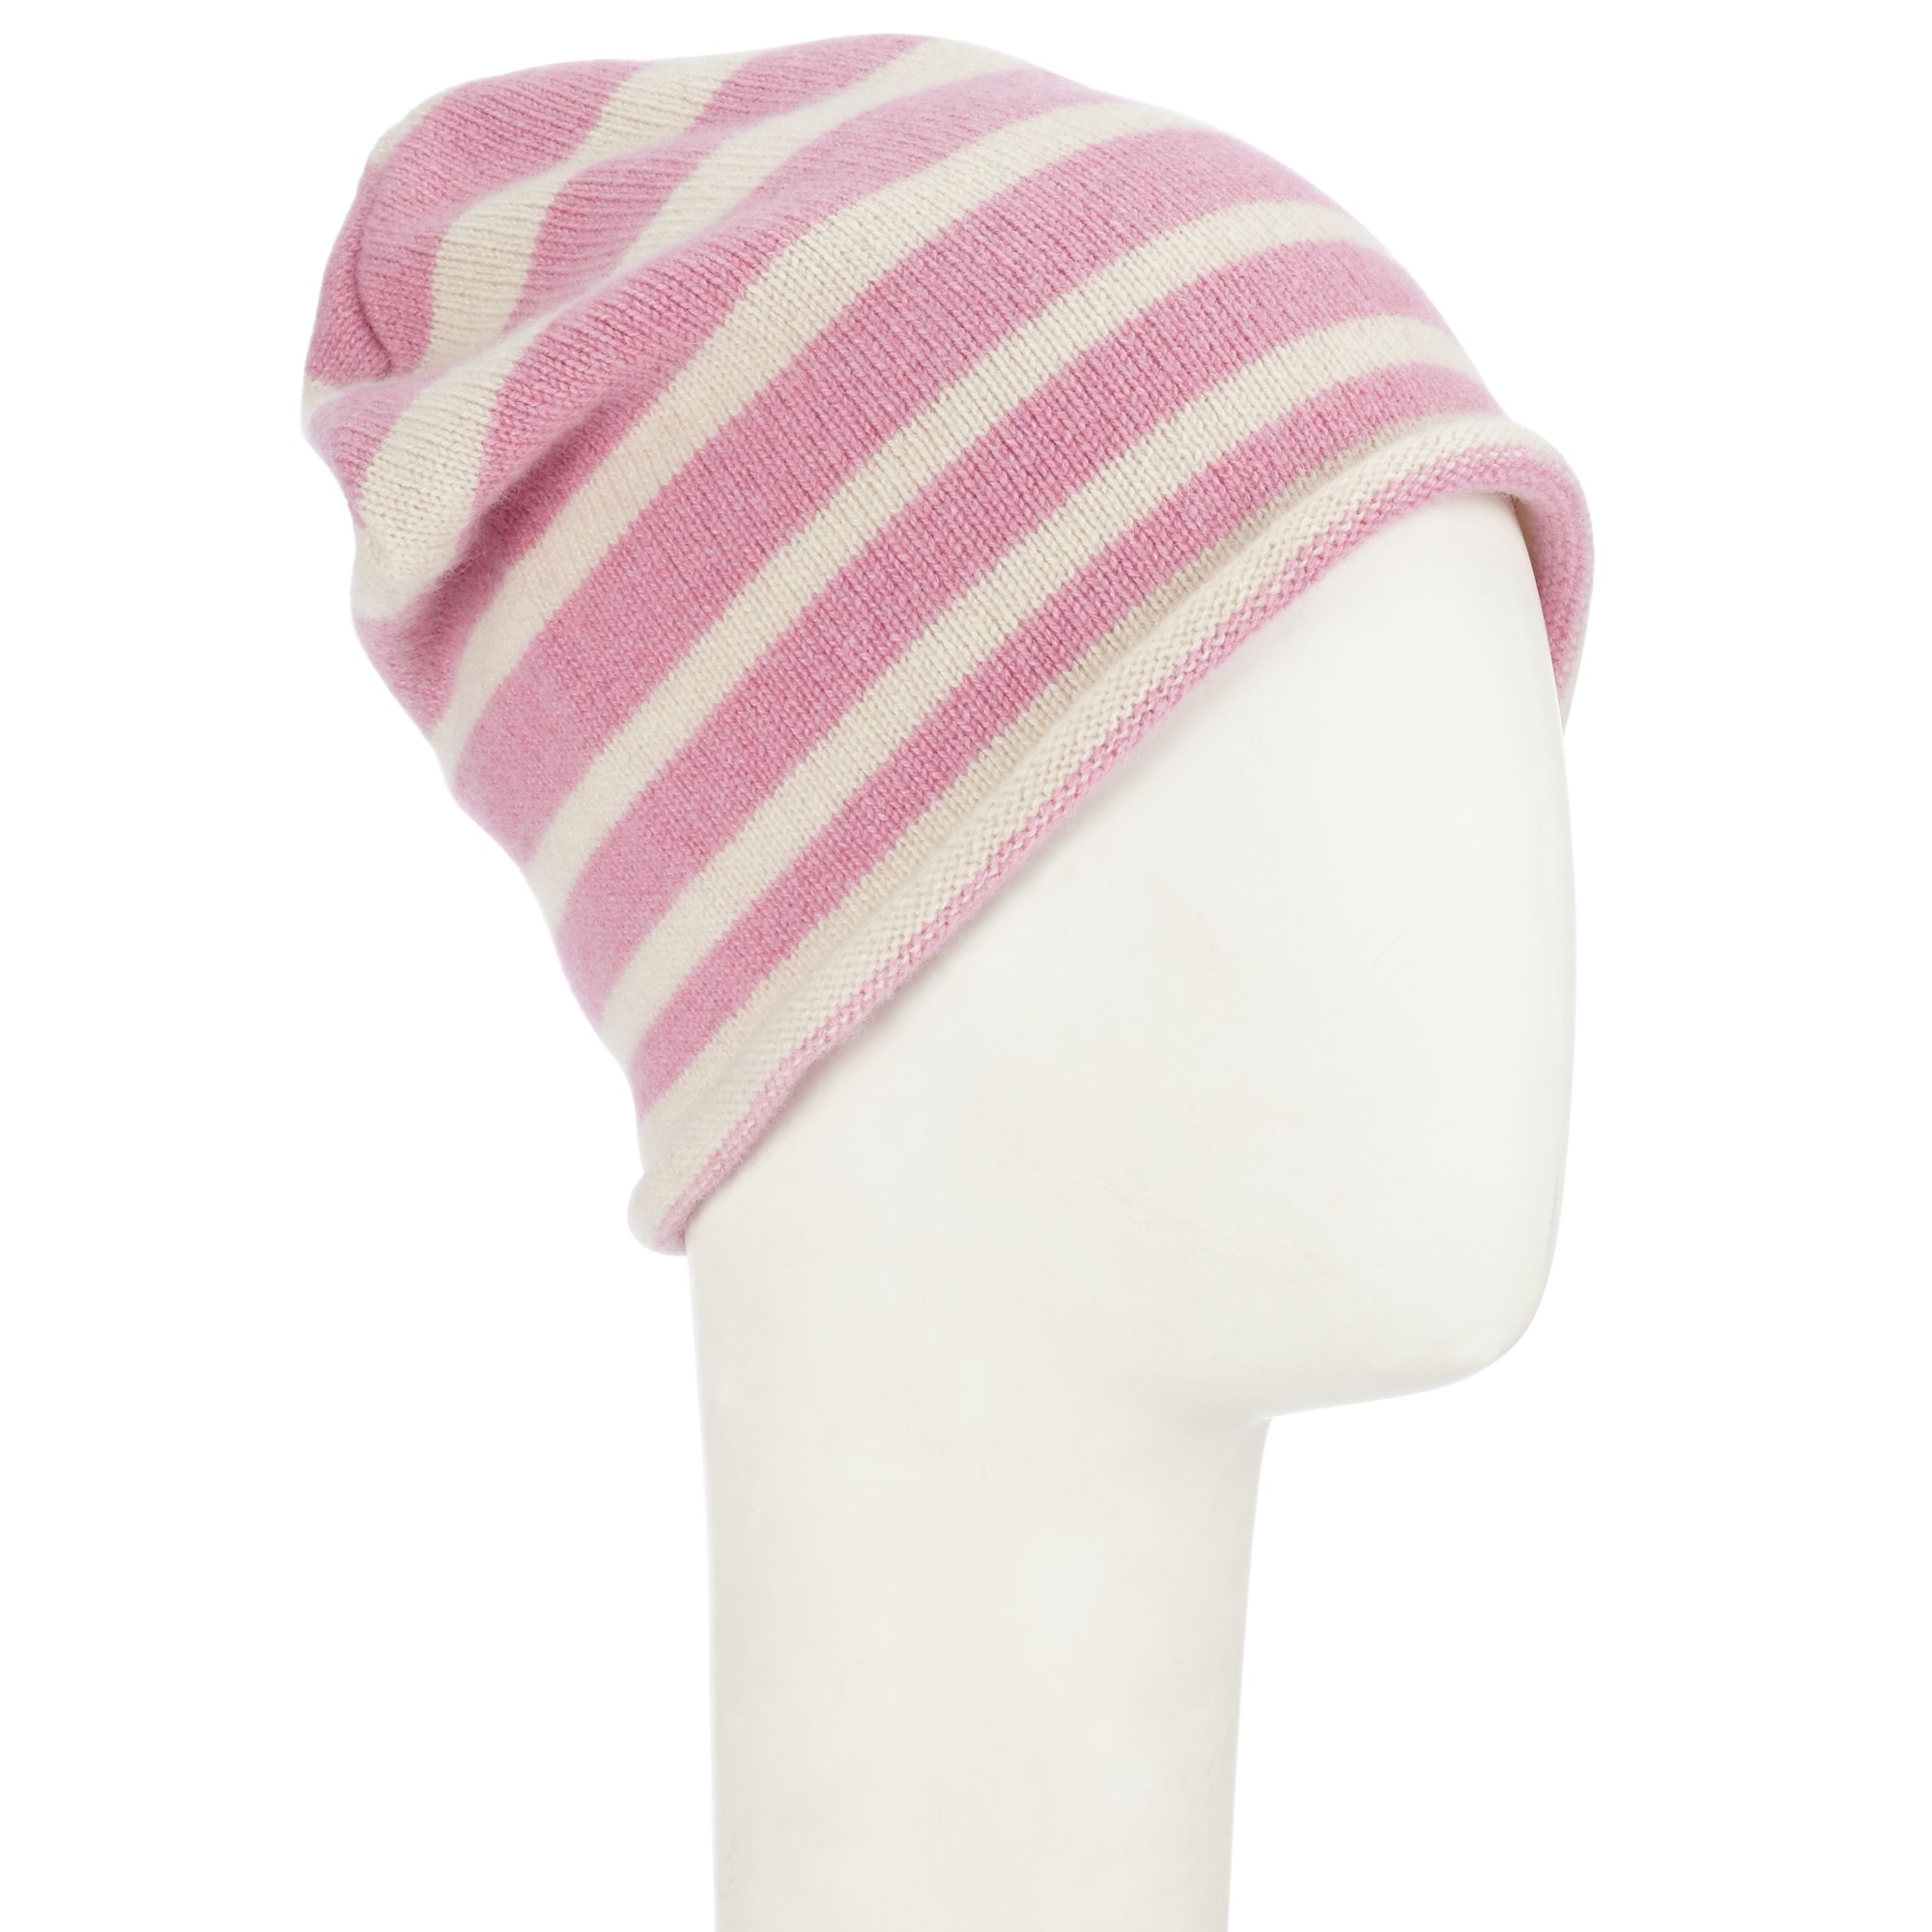 3ff496dbb7e1c John Lewis Made In Italy Cashmere Stripe Beanie Hat in Pink - Lyst